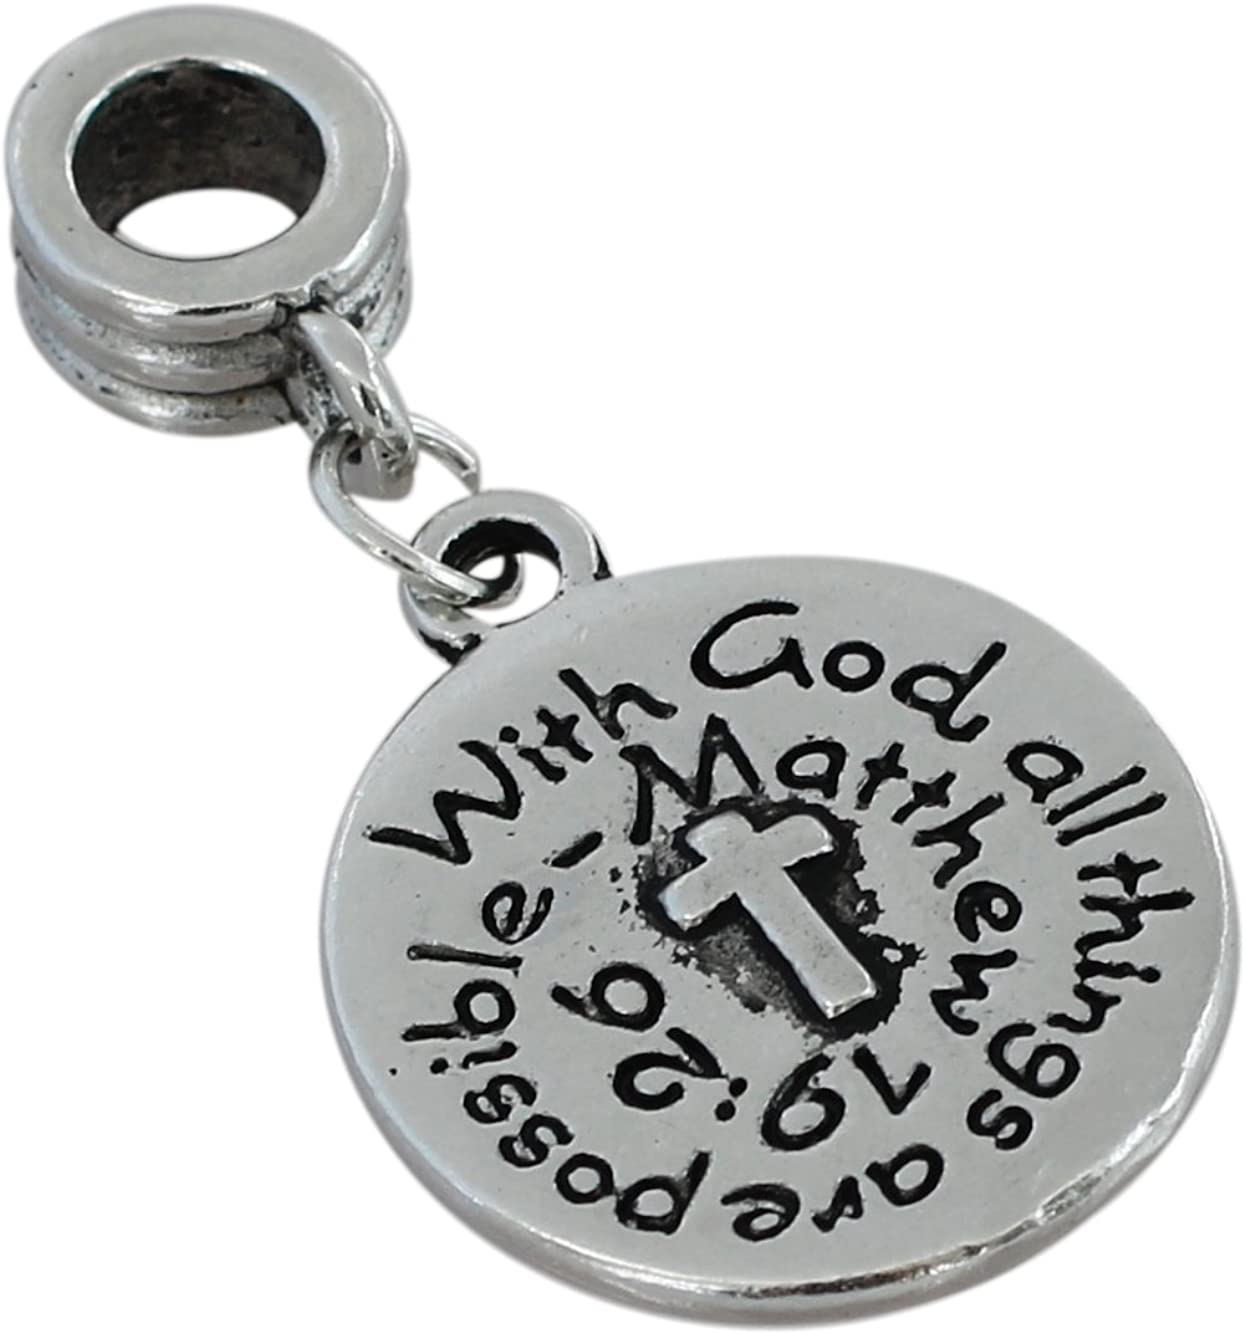 Forge with God All Things are Possible Religious Charm Bead Compatible with European Snake Chain Bracelets